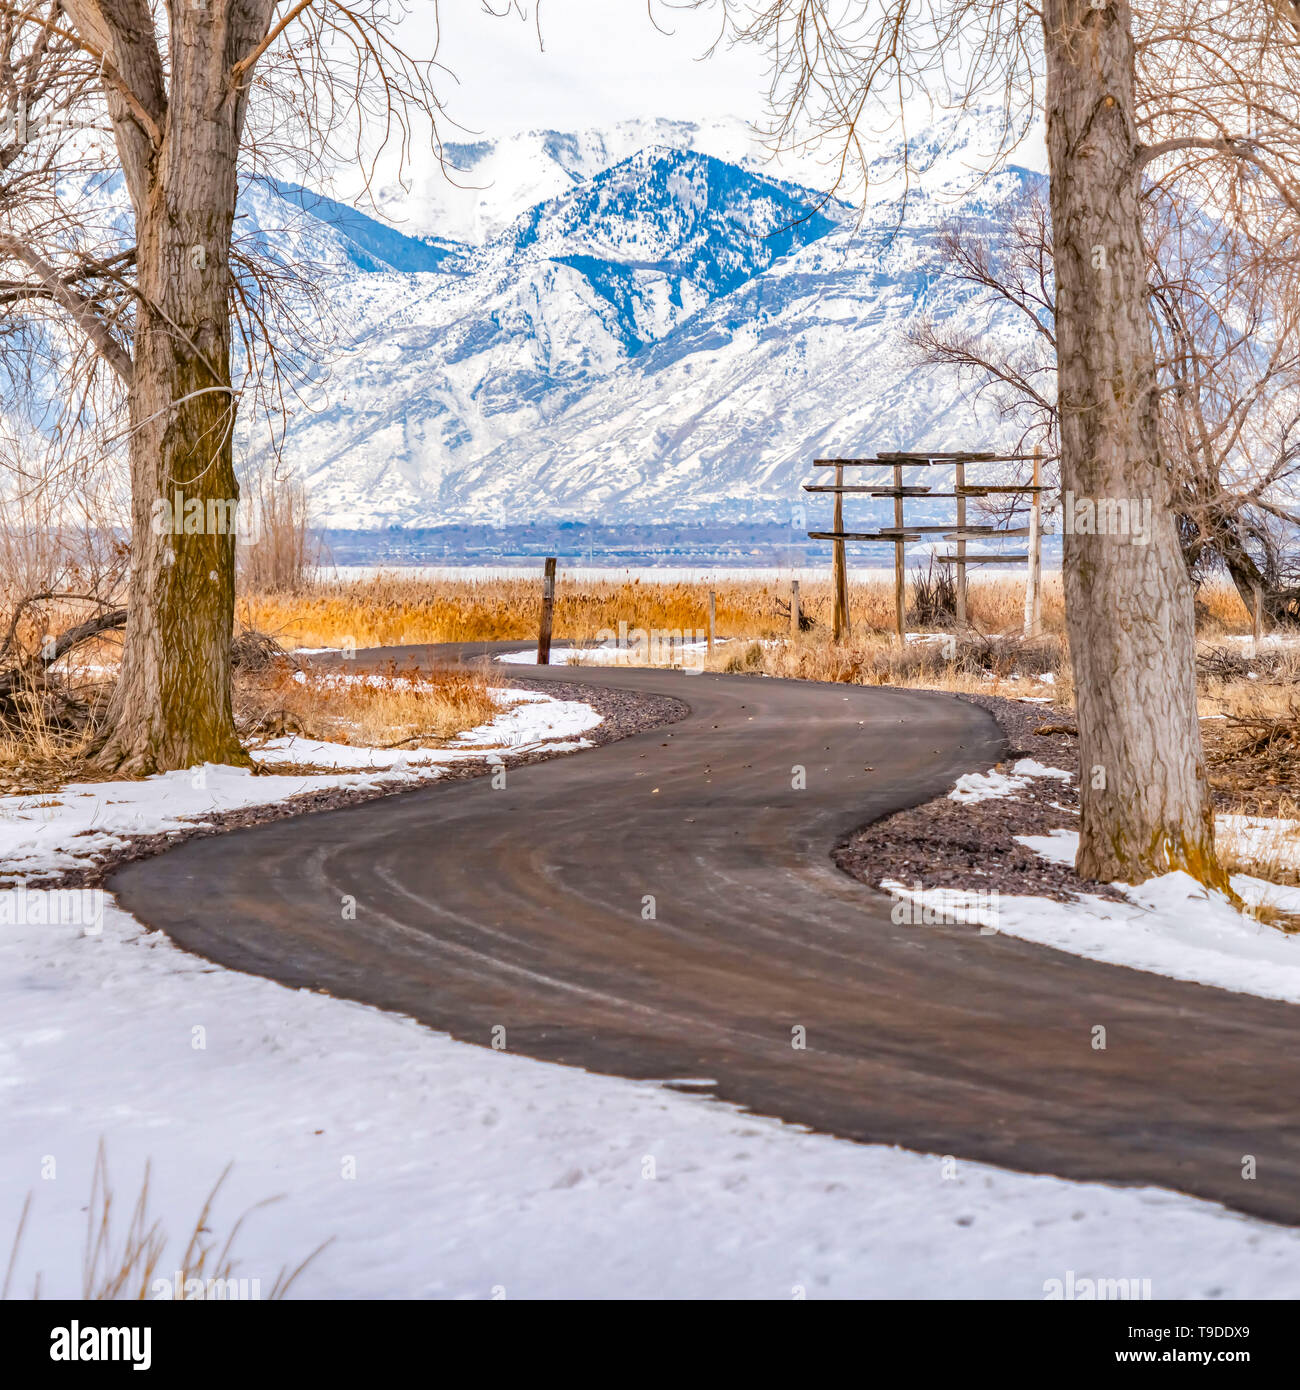 Clear Square Curving road on a snowy terrain with tall leafless hibernating trees in winter - Stock Image